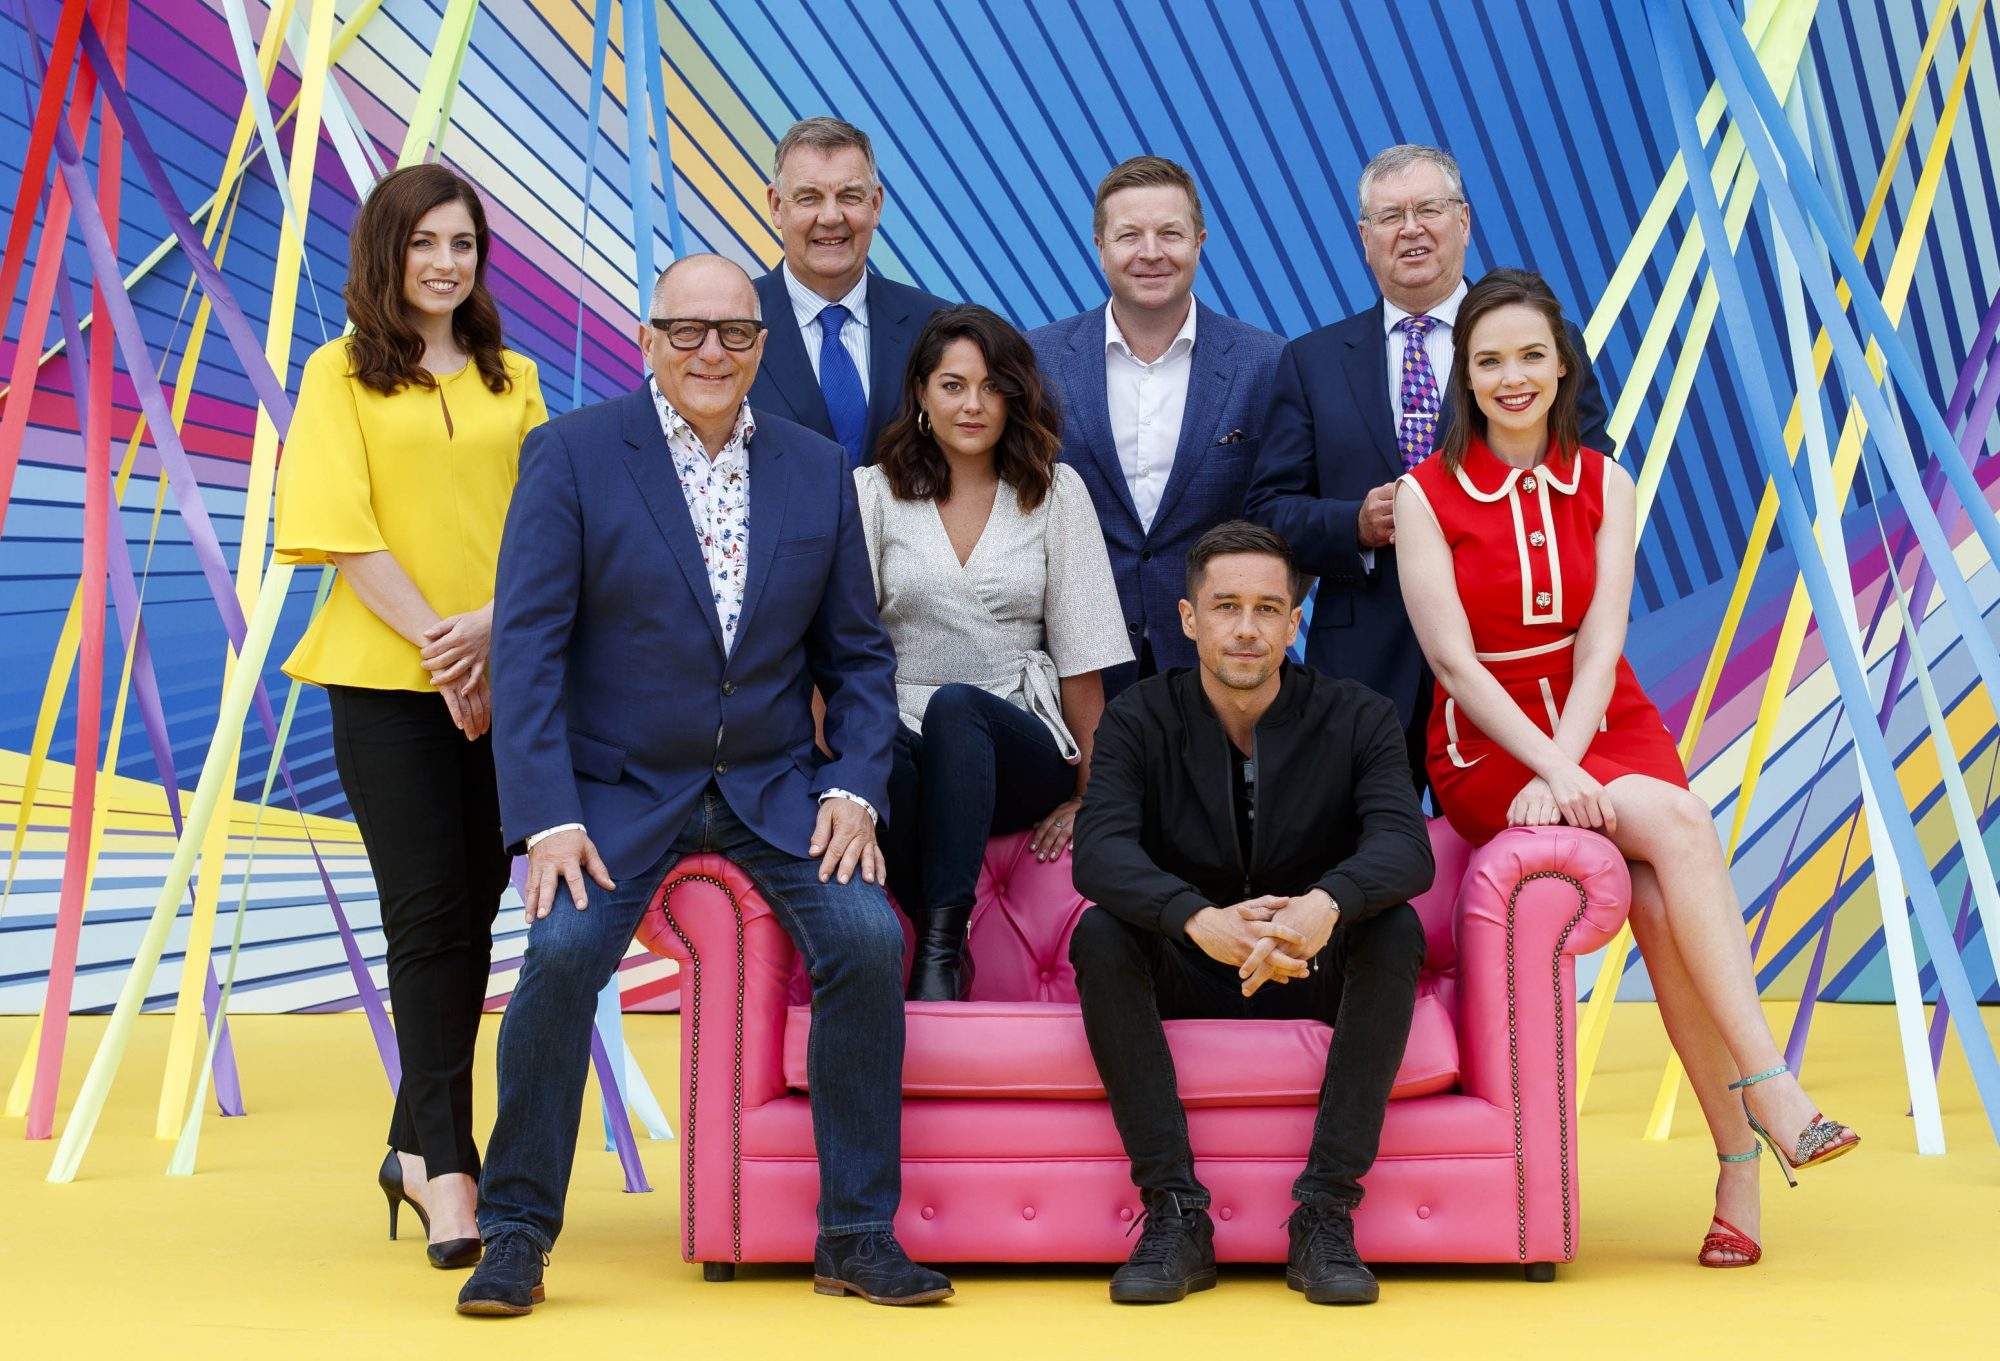 Joanne Cantwell, Hugh Wallace, Bryan Dobson, Sarah Greene, Darragh Maloney, Killian Scott, Joe Duffy and Eileen O'Higgins at RTÉ today announced a slate of new impactful Irish programming, star signings and a strong focus on climate as part of its upcoming new season. Picture: Andres Poveda